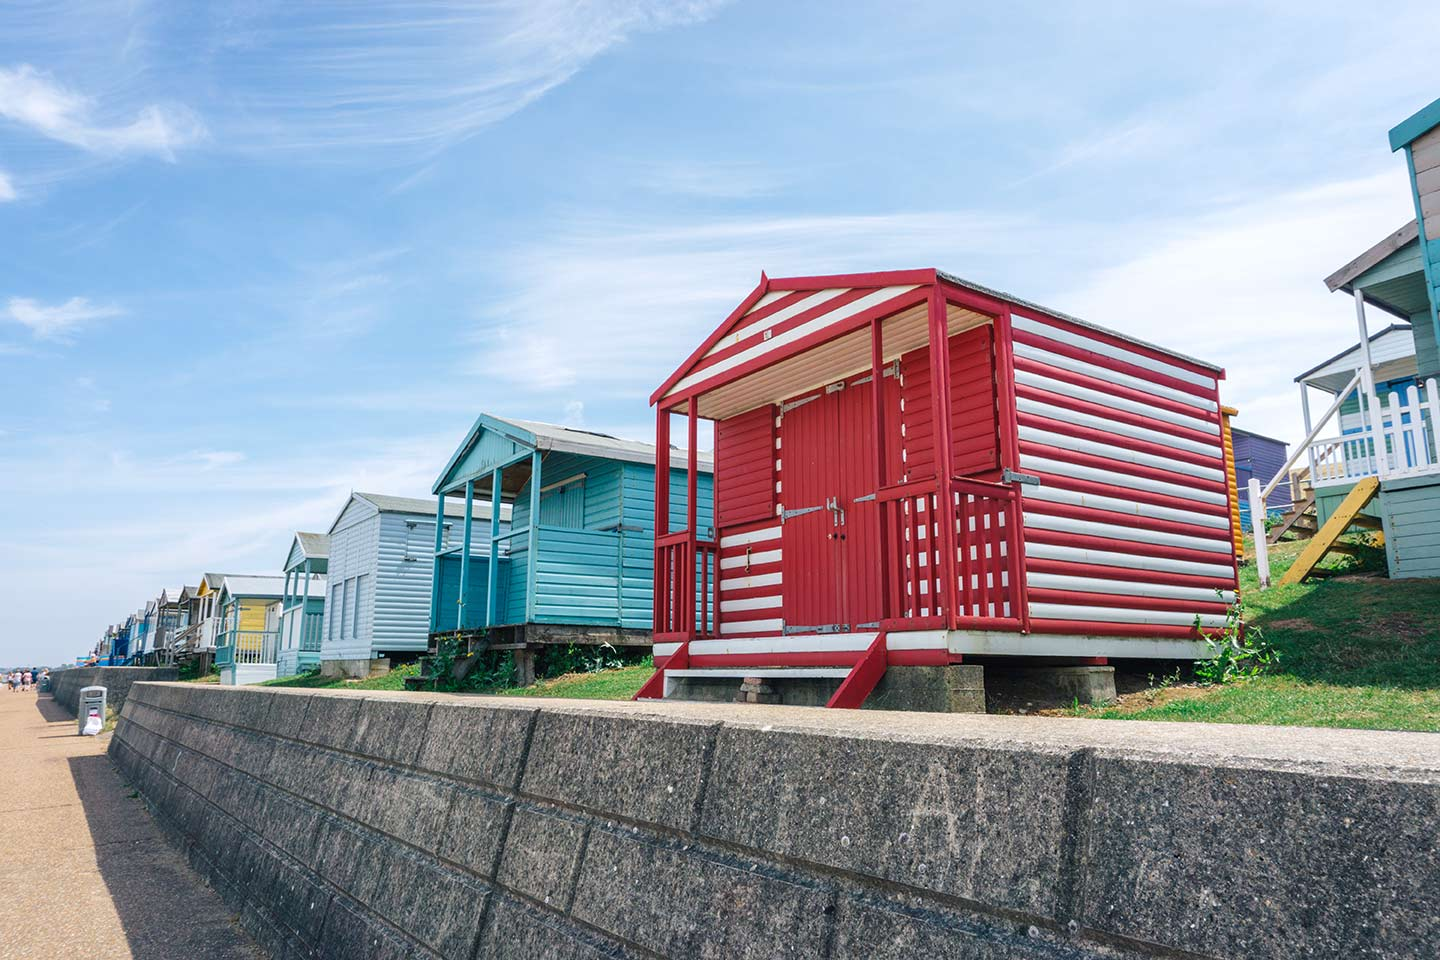 Coastal weekend Trips in the UK, Whitstable colourful beach huts lining the beach